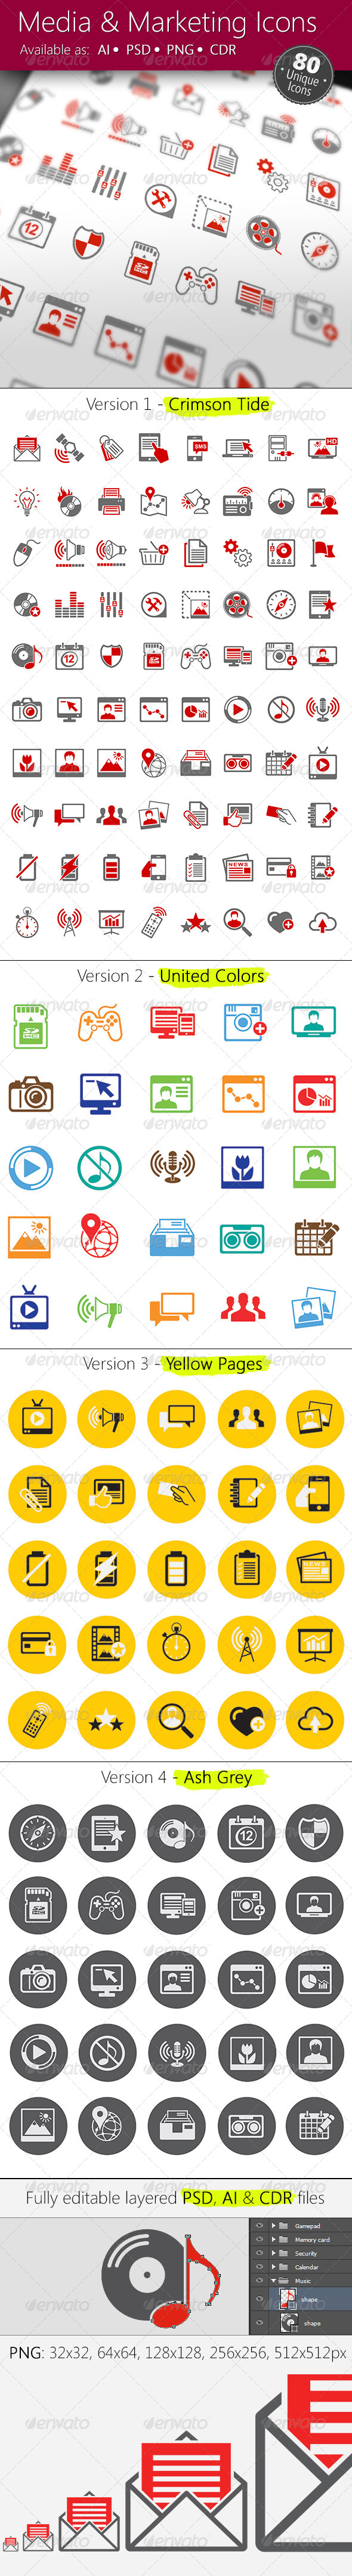 Media & Marketing Icons Set - Web Icons